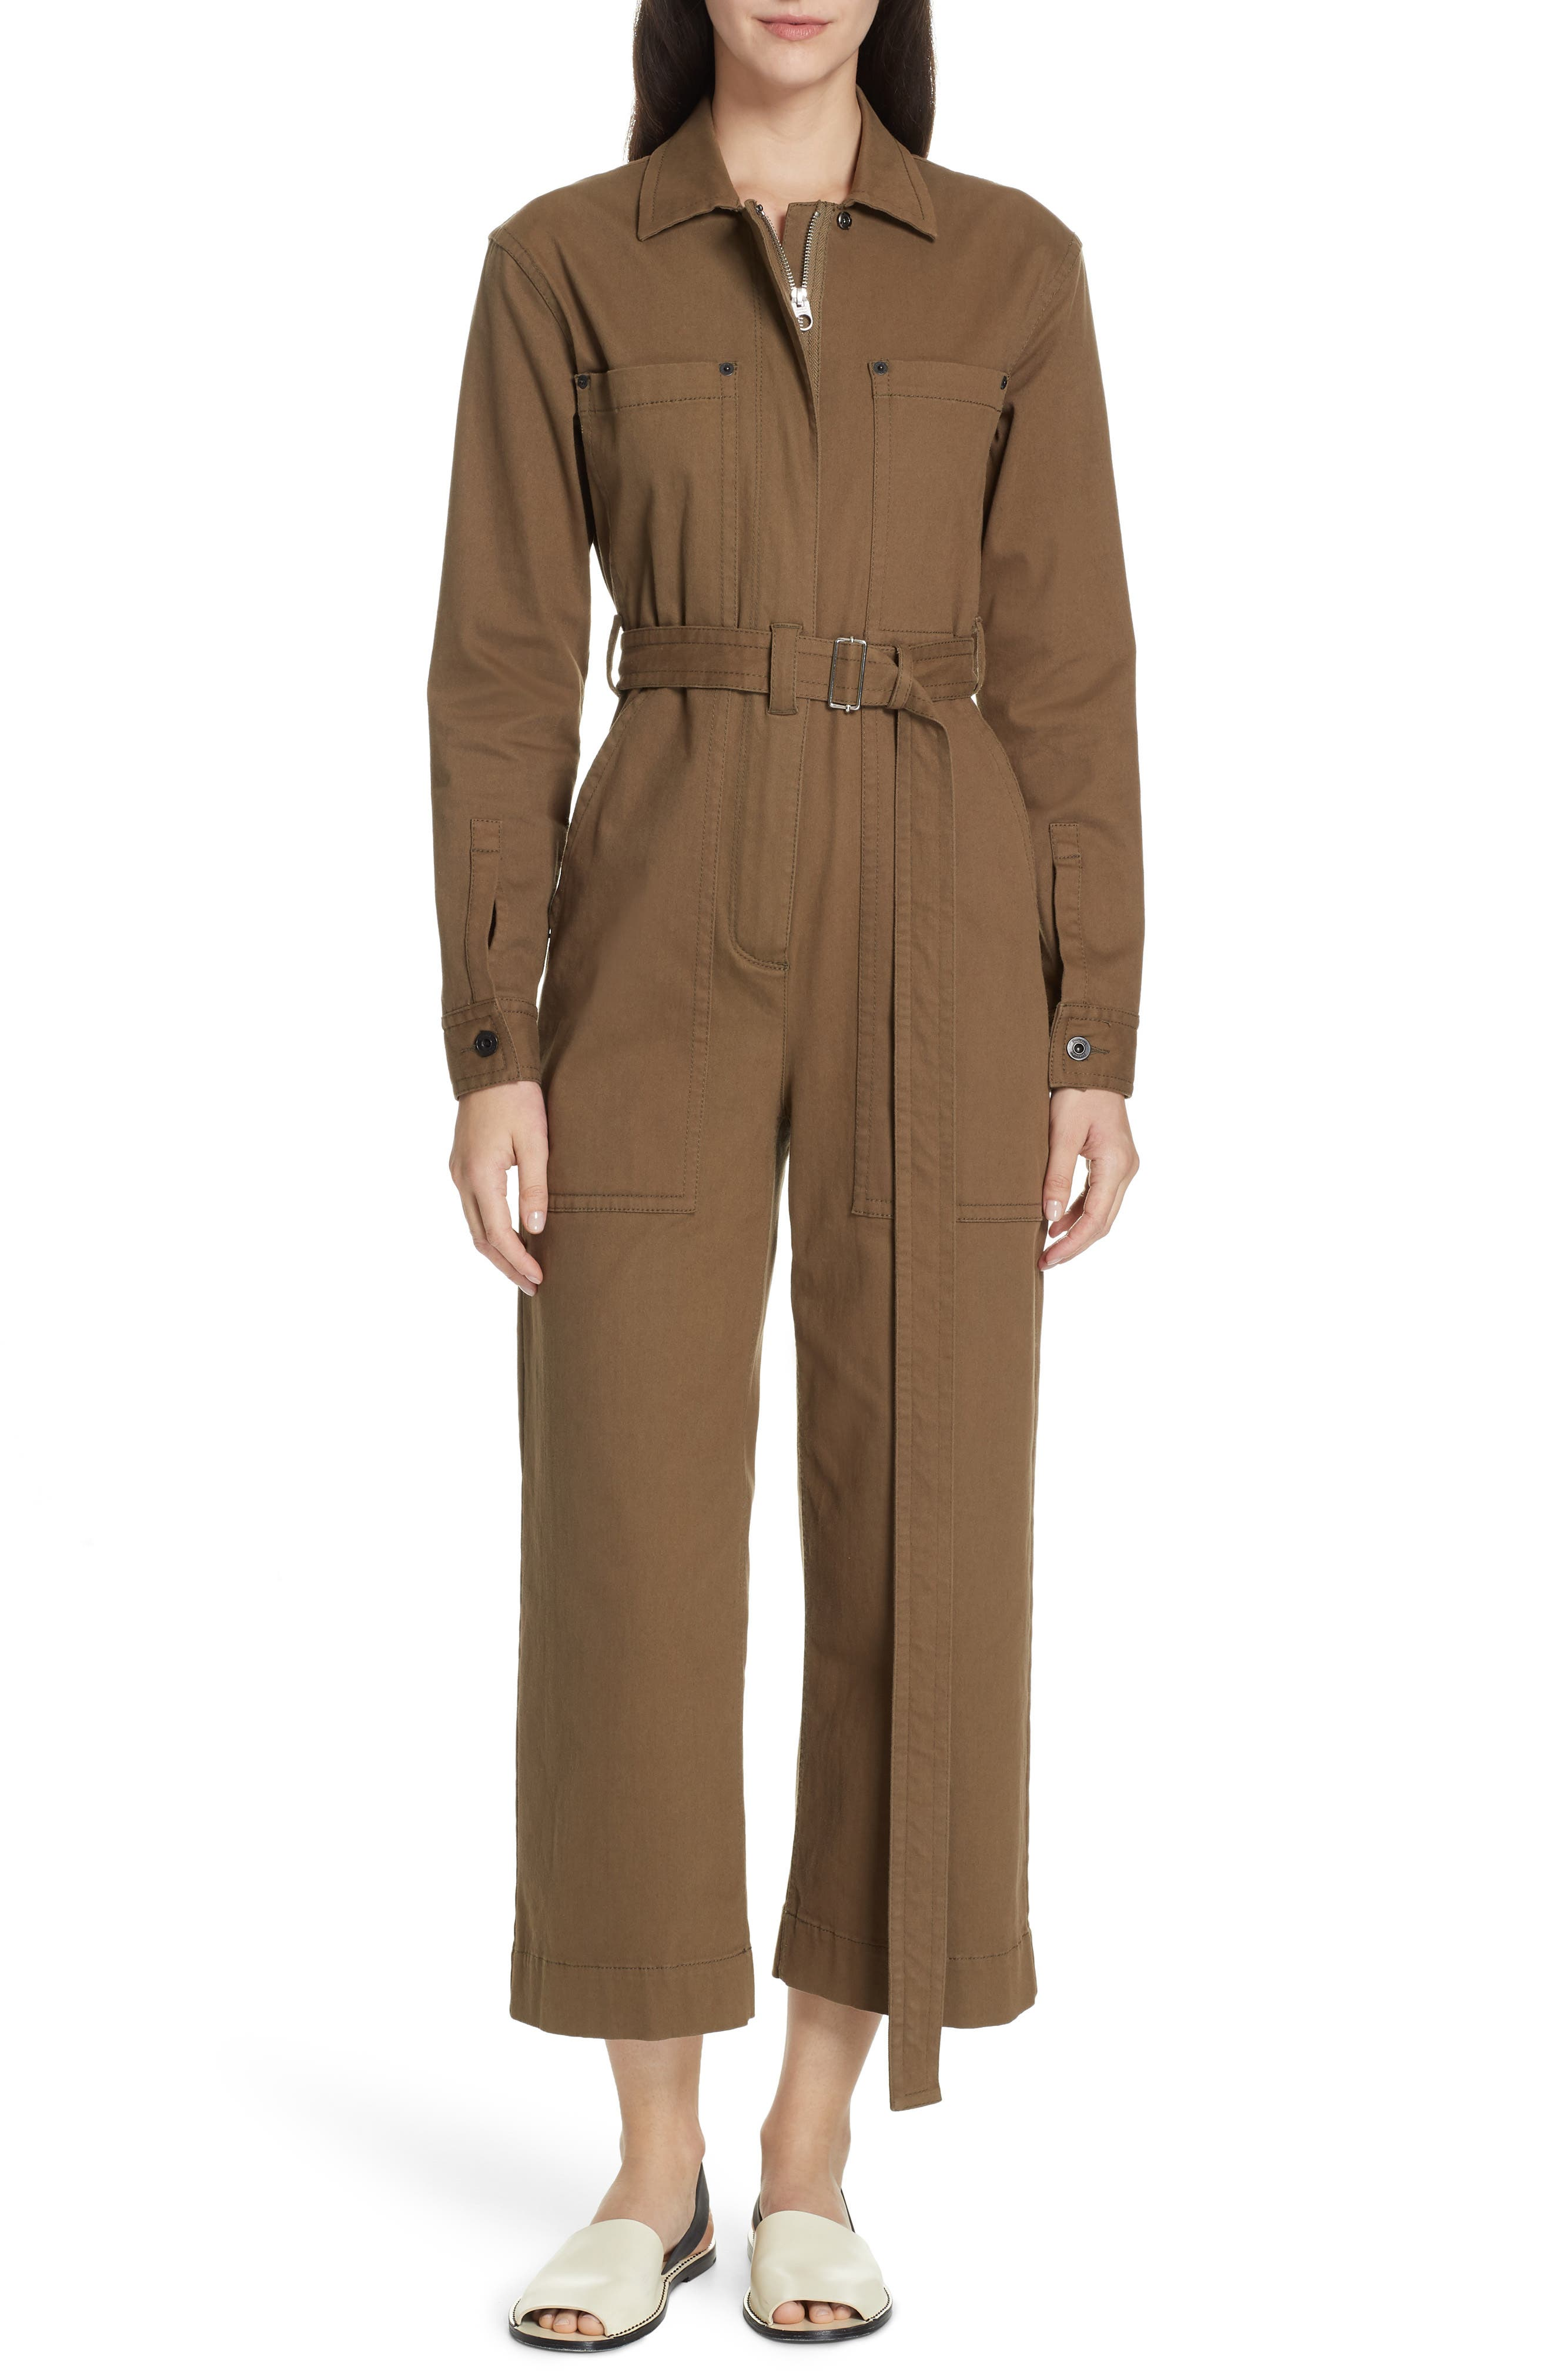 PROENZA SCHOULER, PSWL Stretch Twill Utility Jumpsuit, Main thumbnail 1, color, DARK FATIGUE